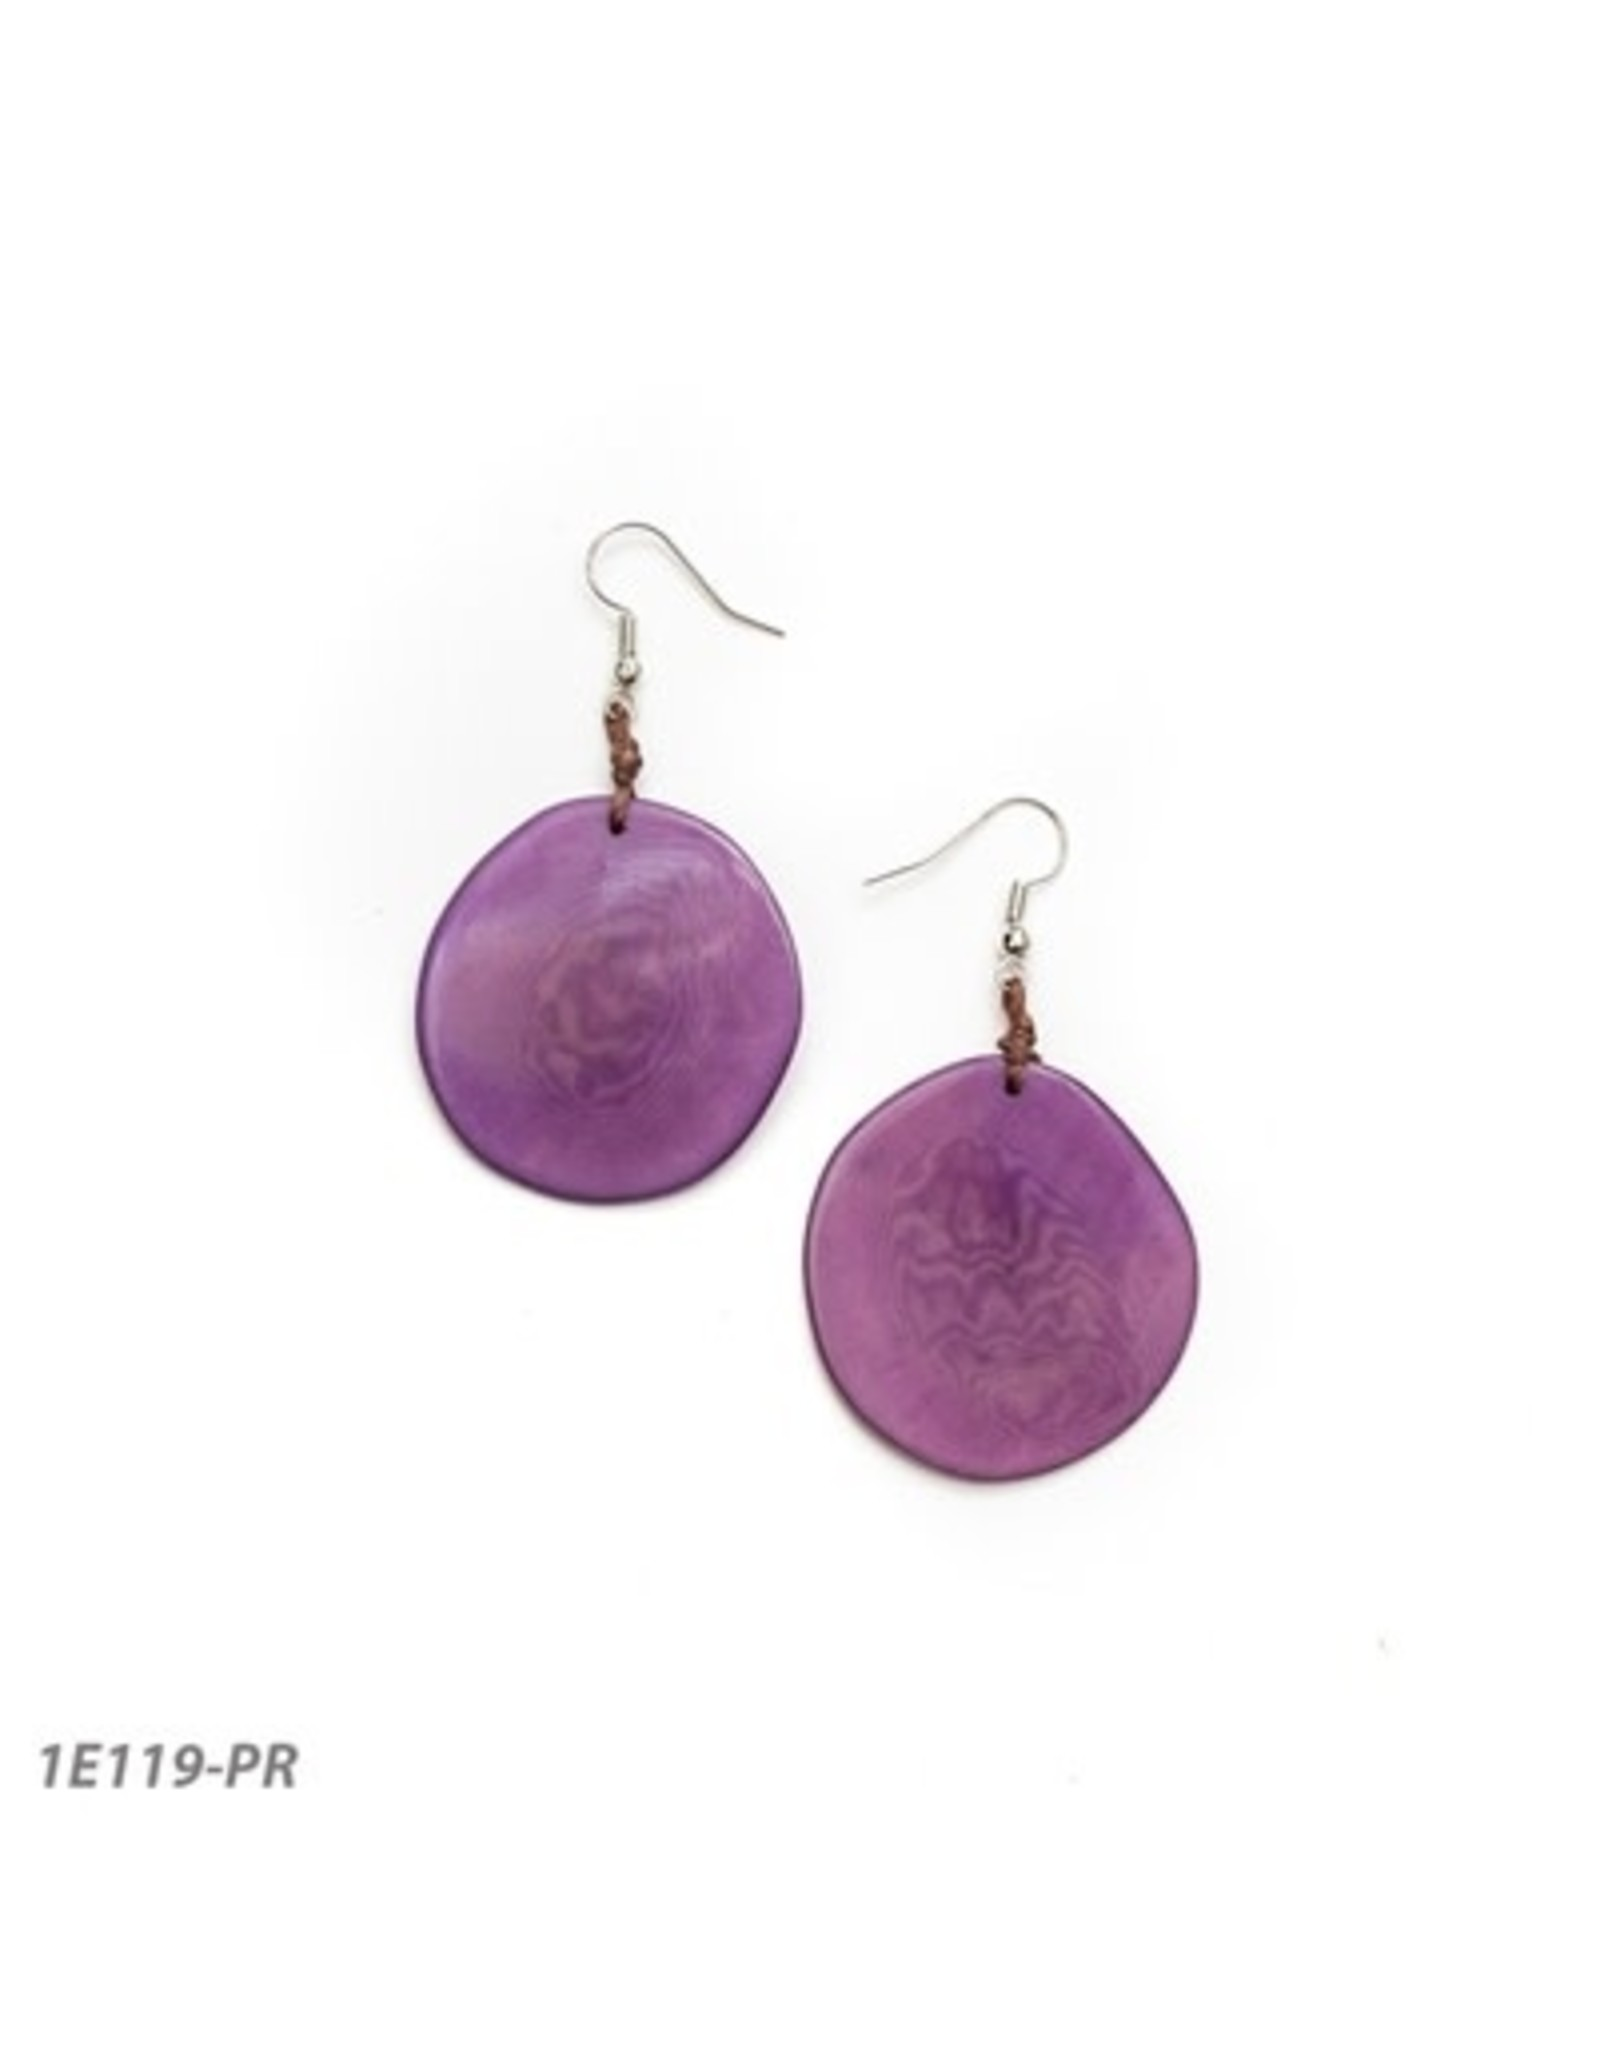 Tagua 1E119 Oro Earring Purple